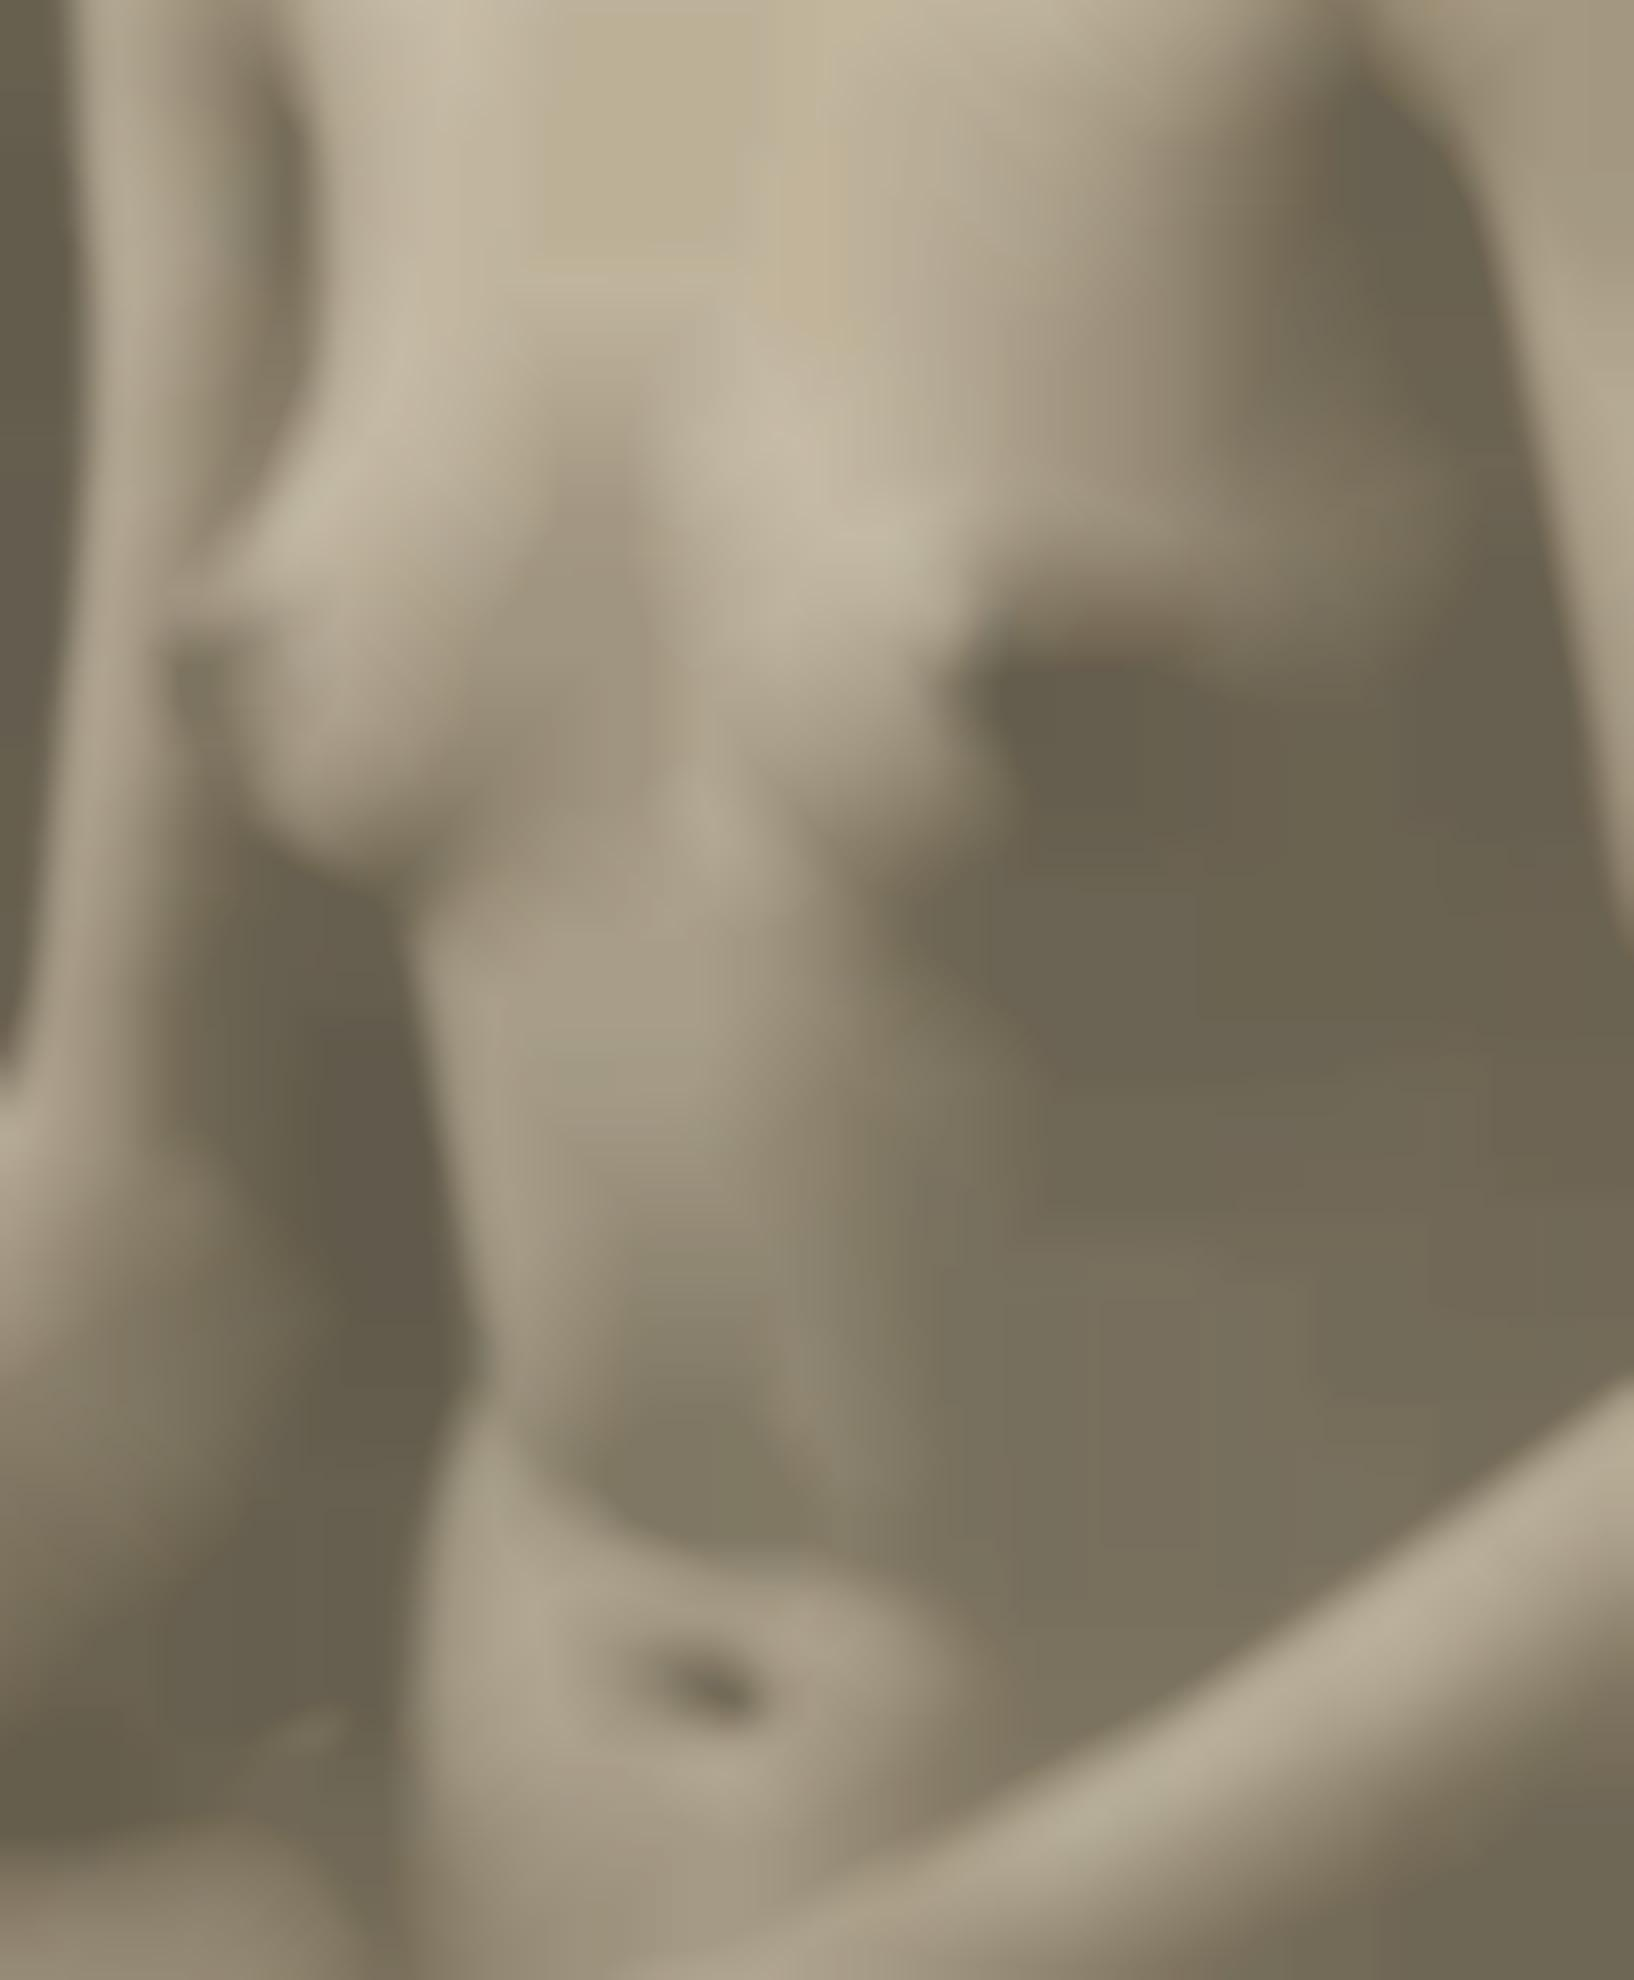 Paul Outerbridge-Nude Torso, Semi-Abstraction-1923